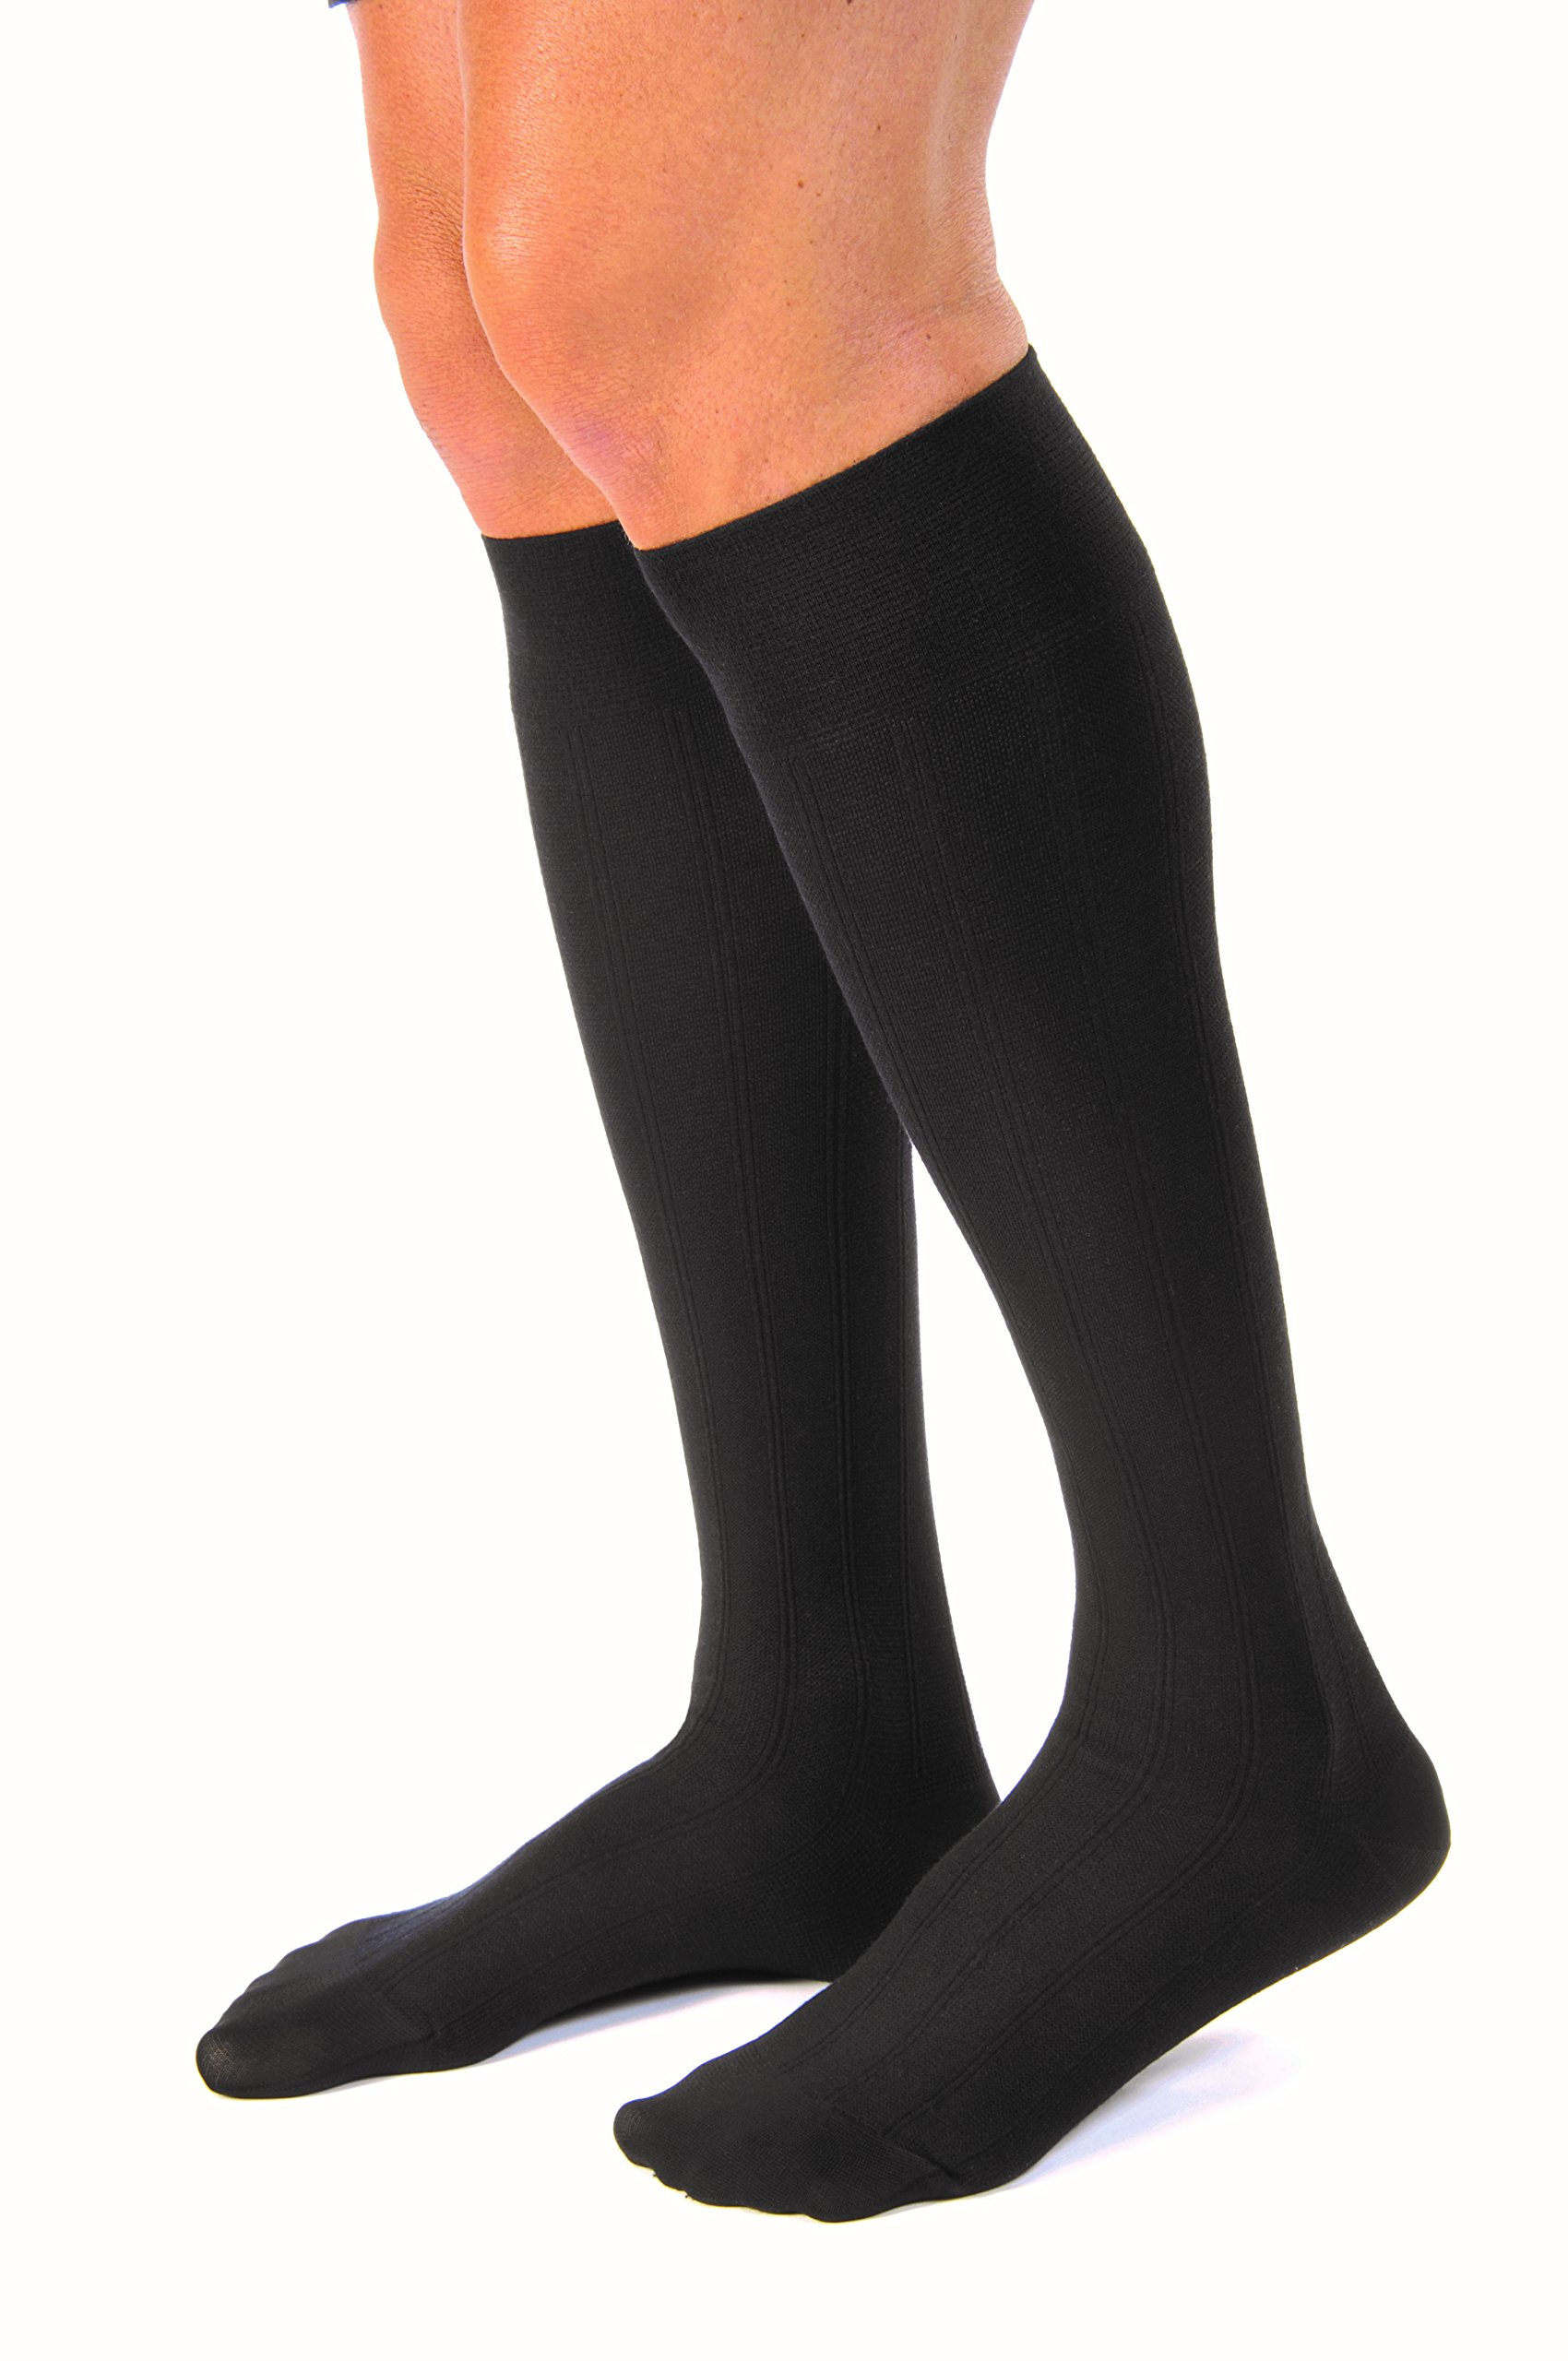 JOBST forMen Casual 20-30 mmHg Knee High Compression Socks, Black, Large by JOBST